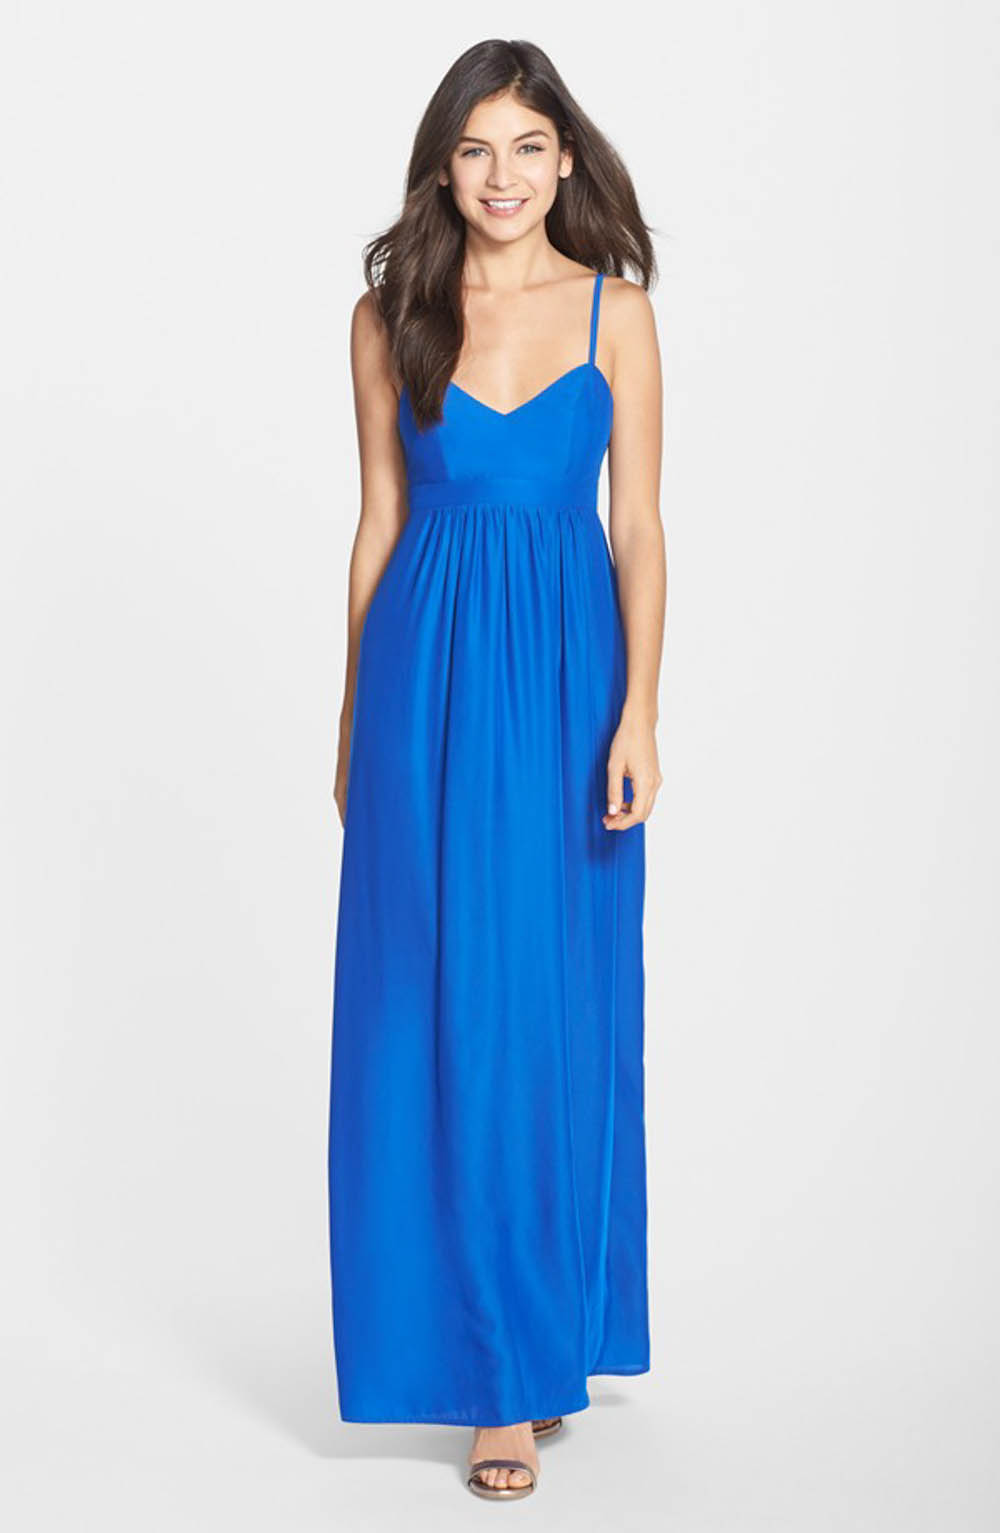 Blue bridesmaid dress by felicity and coco